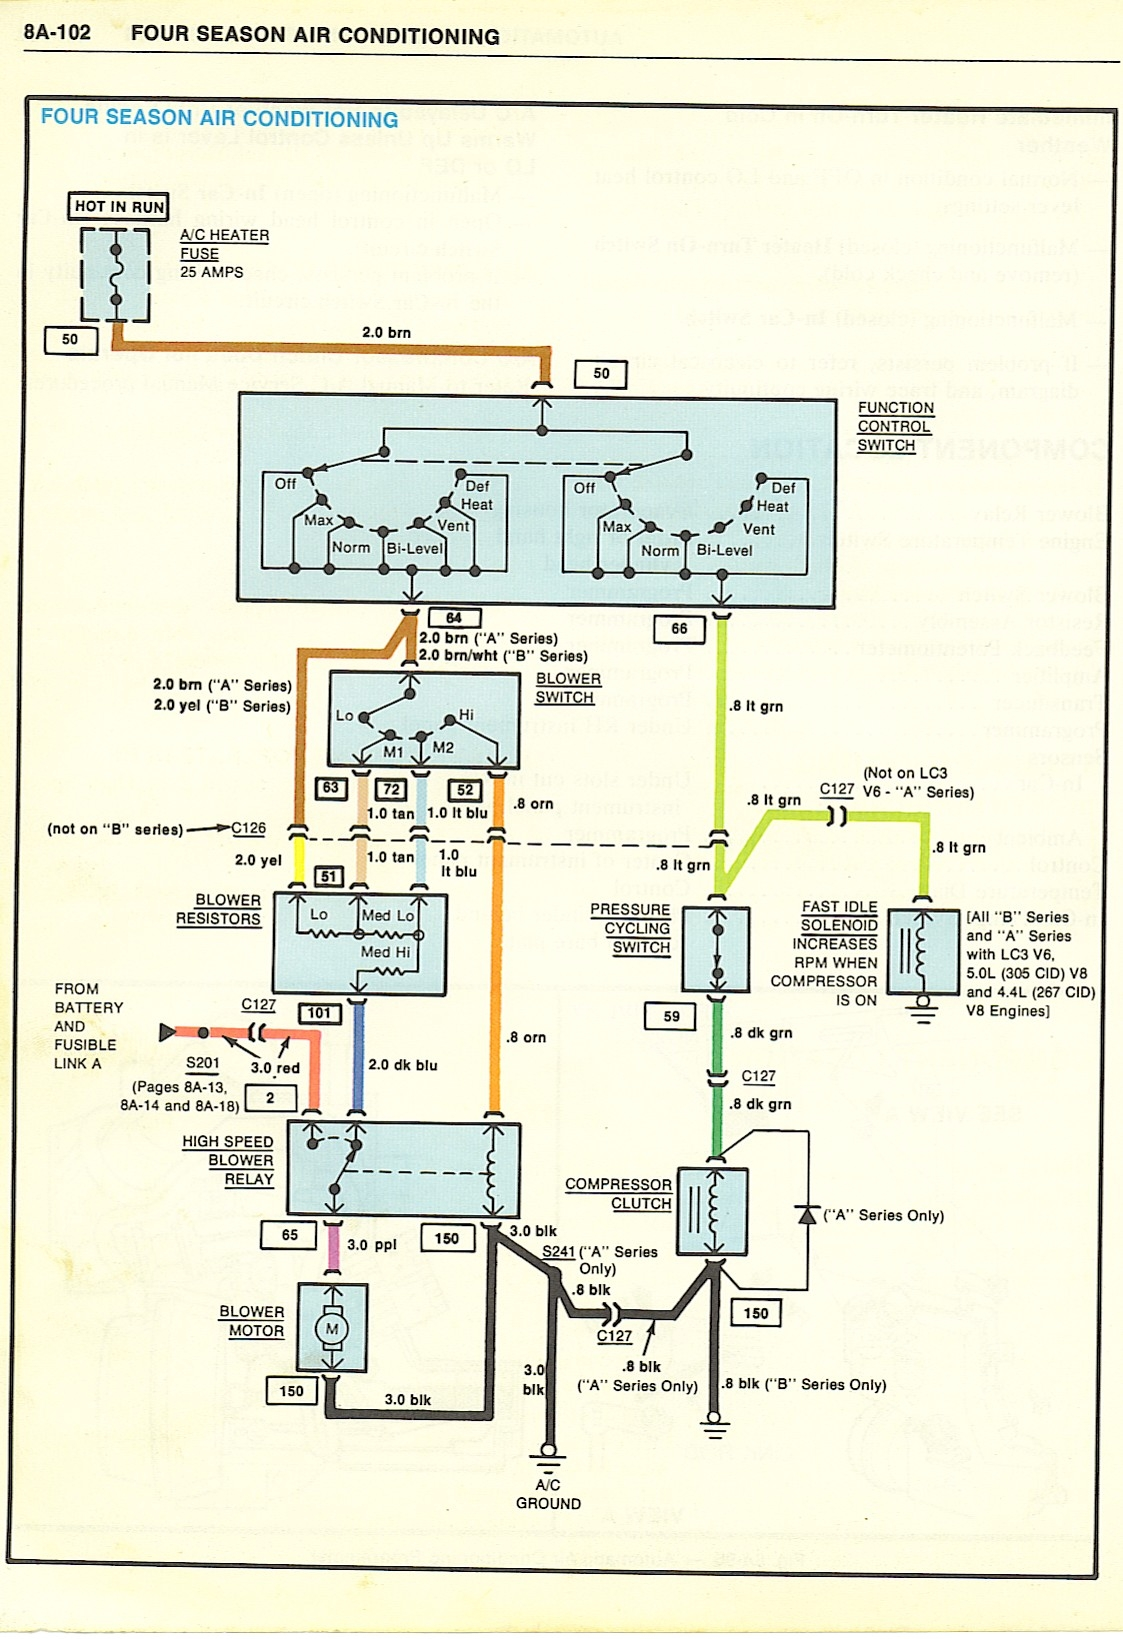 1968 FourSeasonAirConditioner chevy diagrams 1980 corvette wiring diagram at readyjetset.co